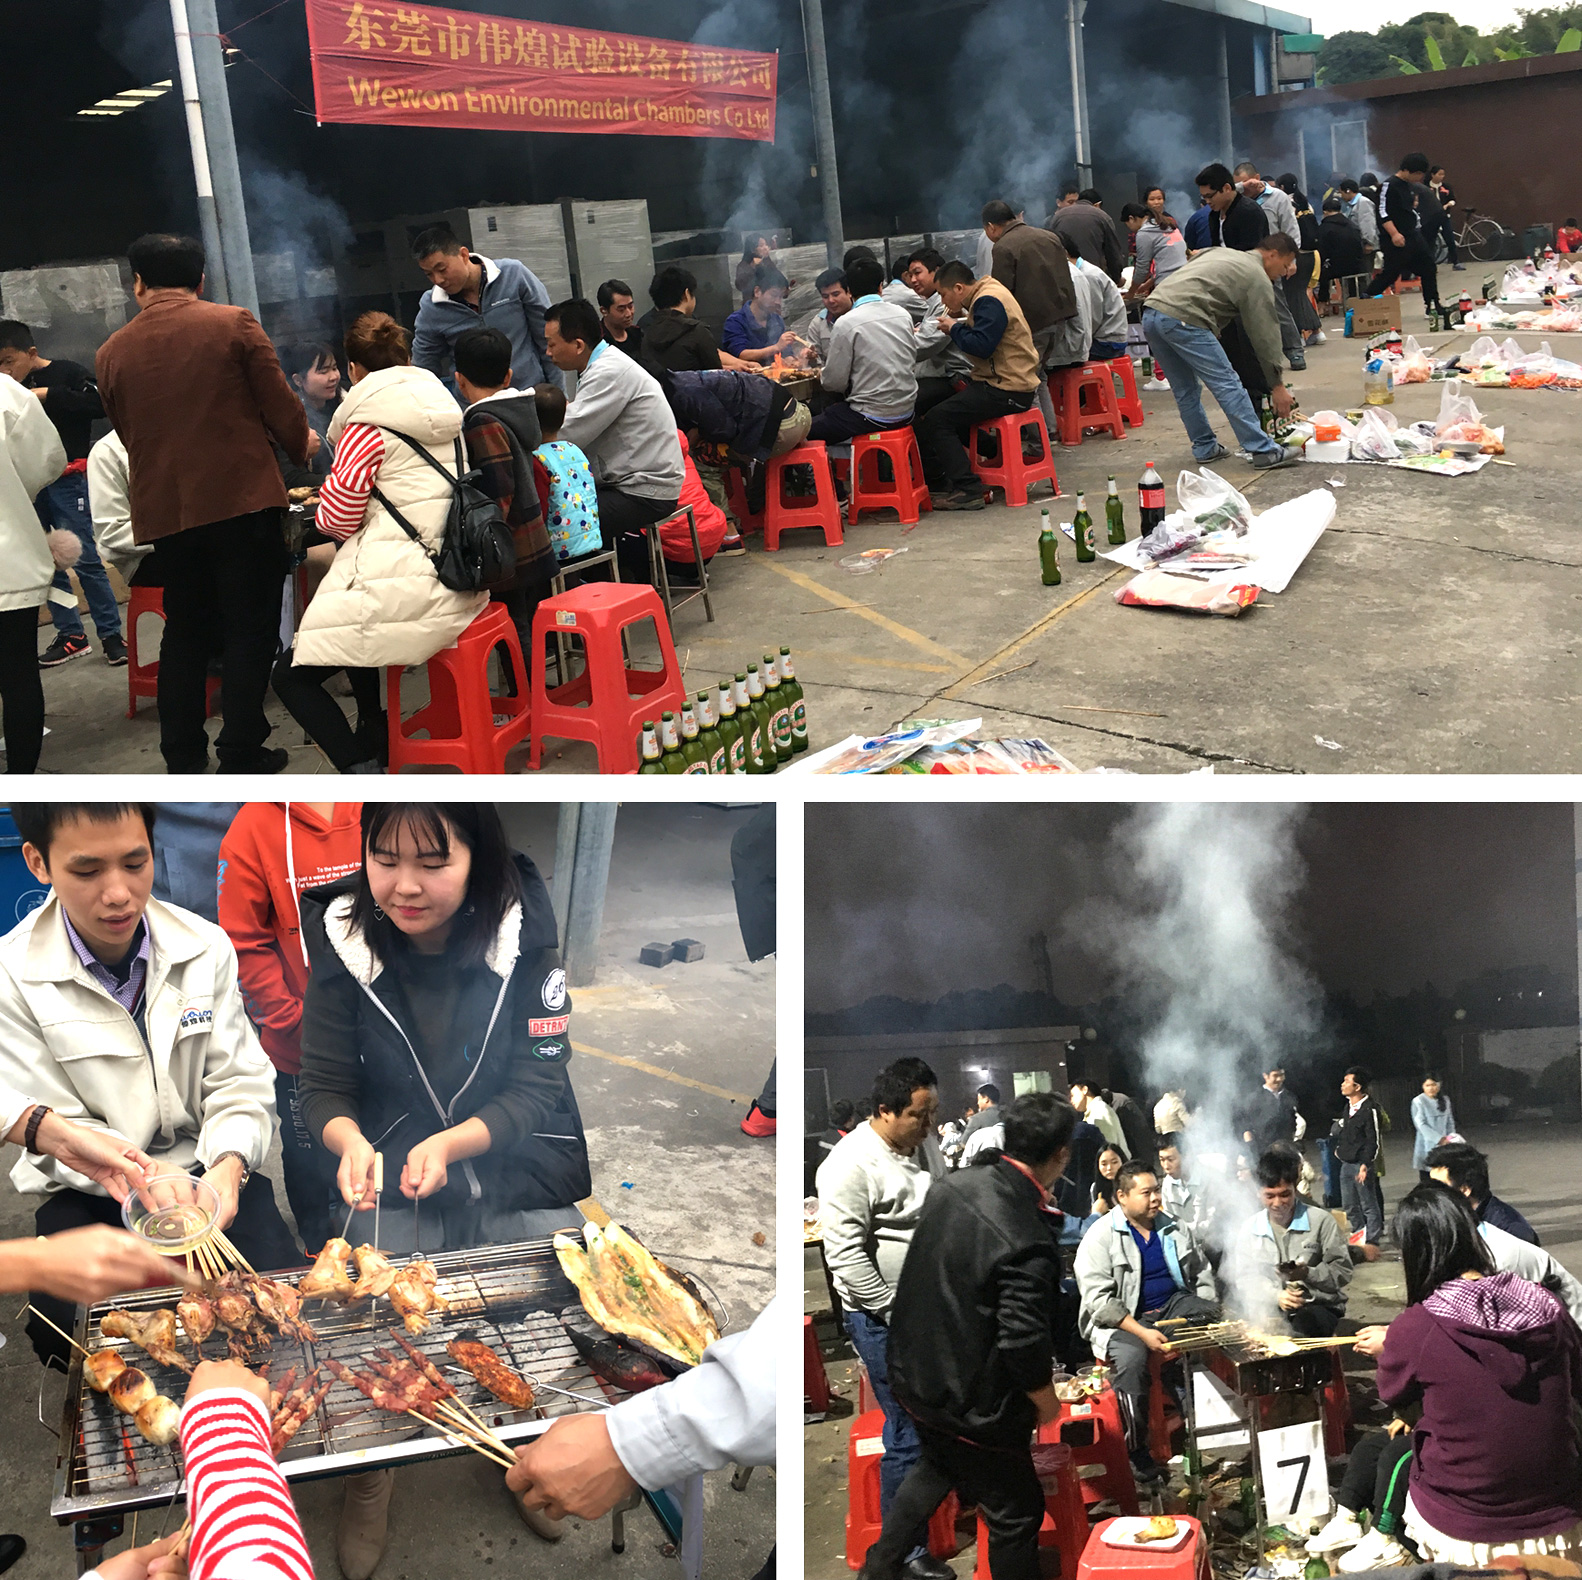 Wewon Employees cooking with barbecue grill